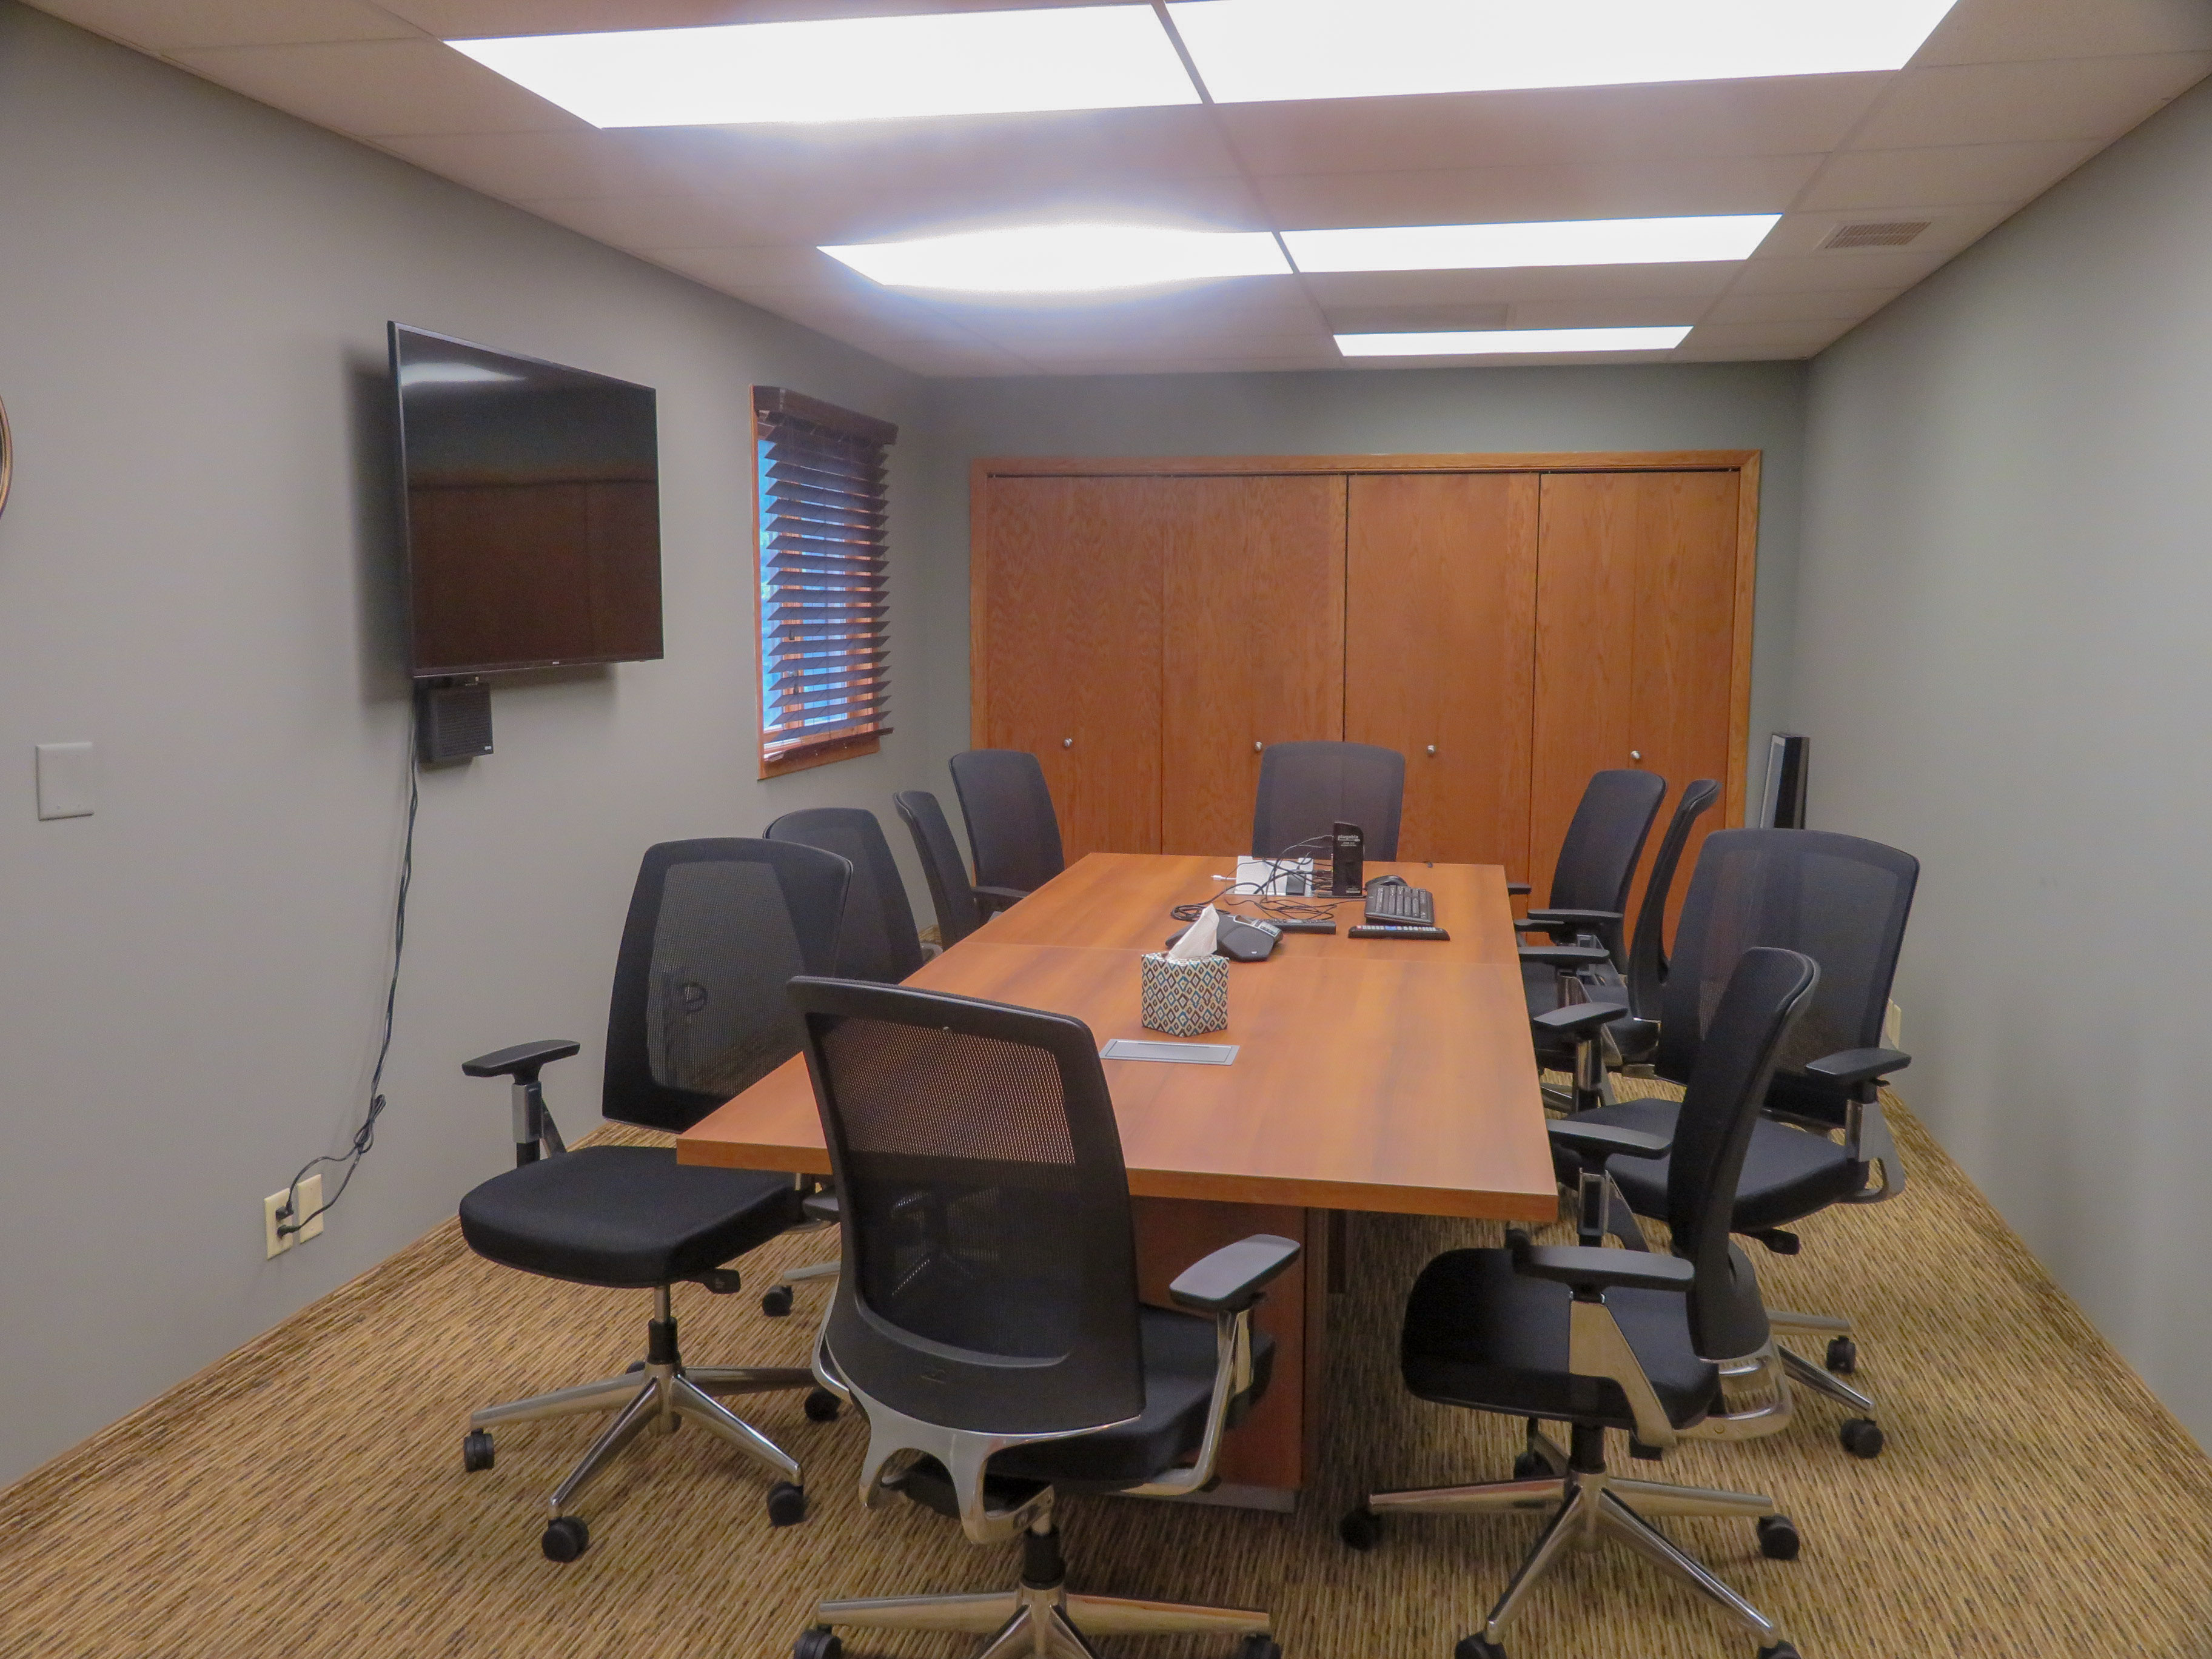 Primary conference room